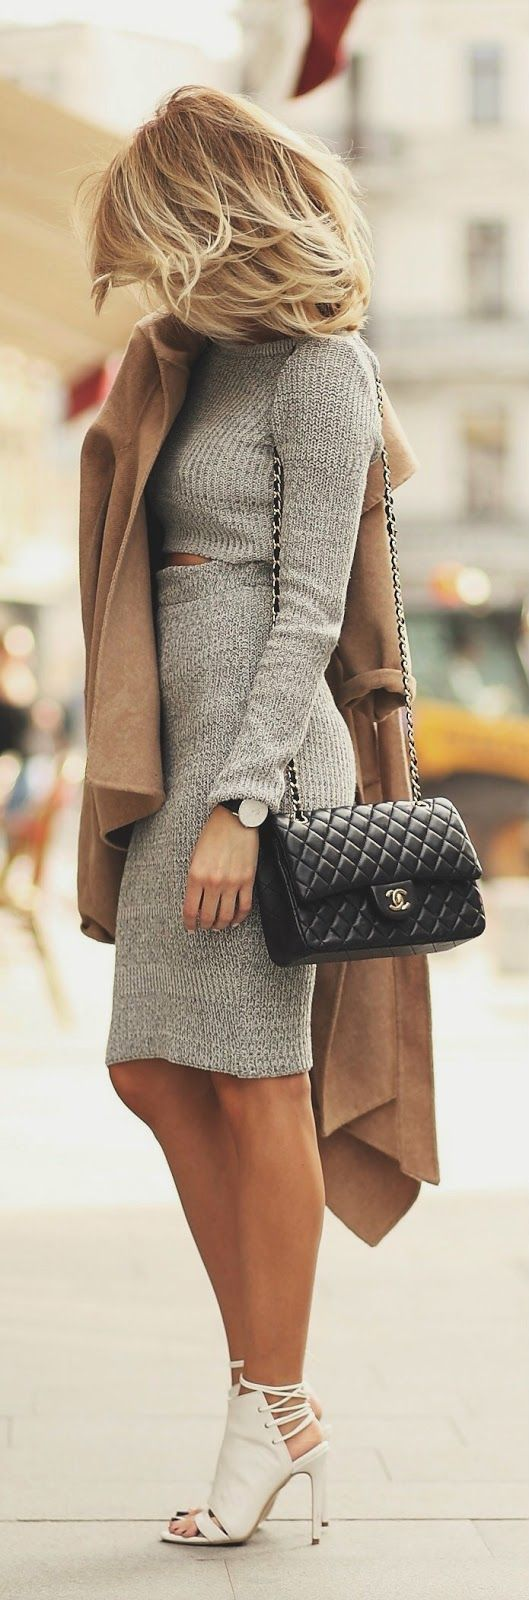 Grey Cropped   Zara Camel Coat, Chanel Bag • Street 'CHIC • ✿ιиѕριяαтισи❀ #abbigliamento: